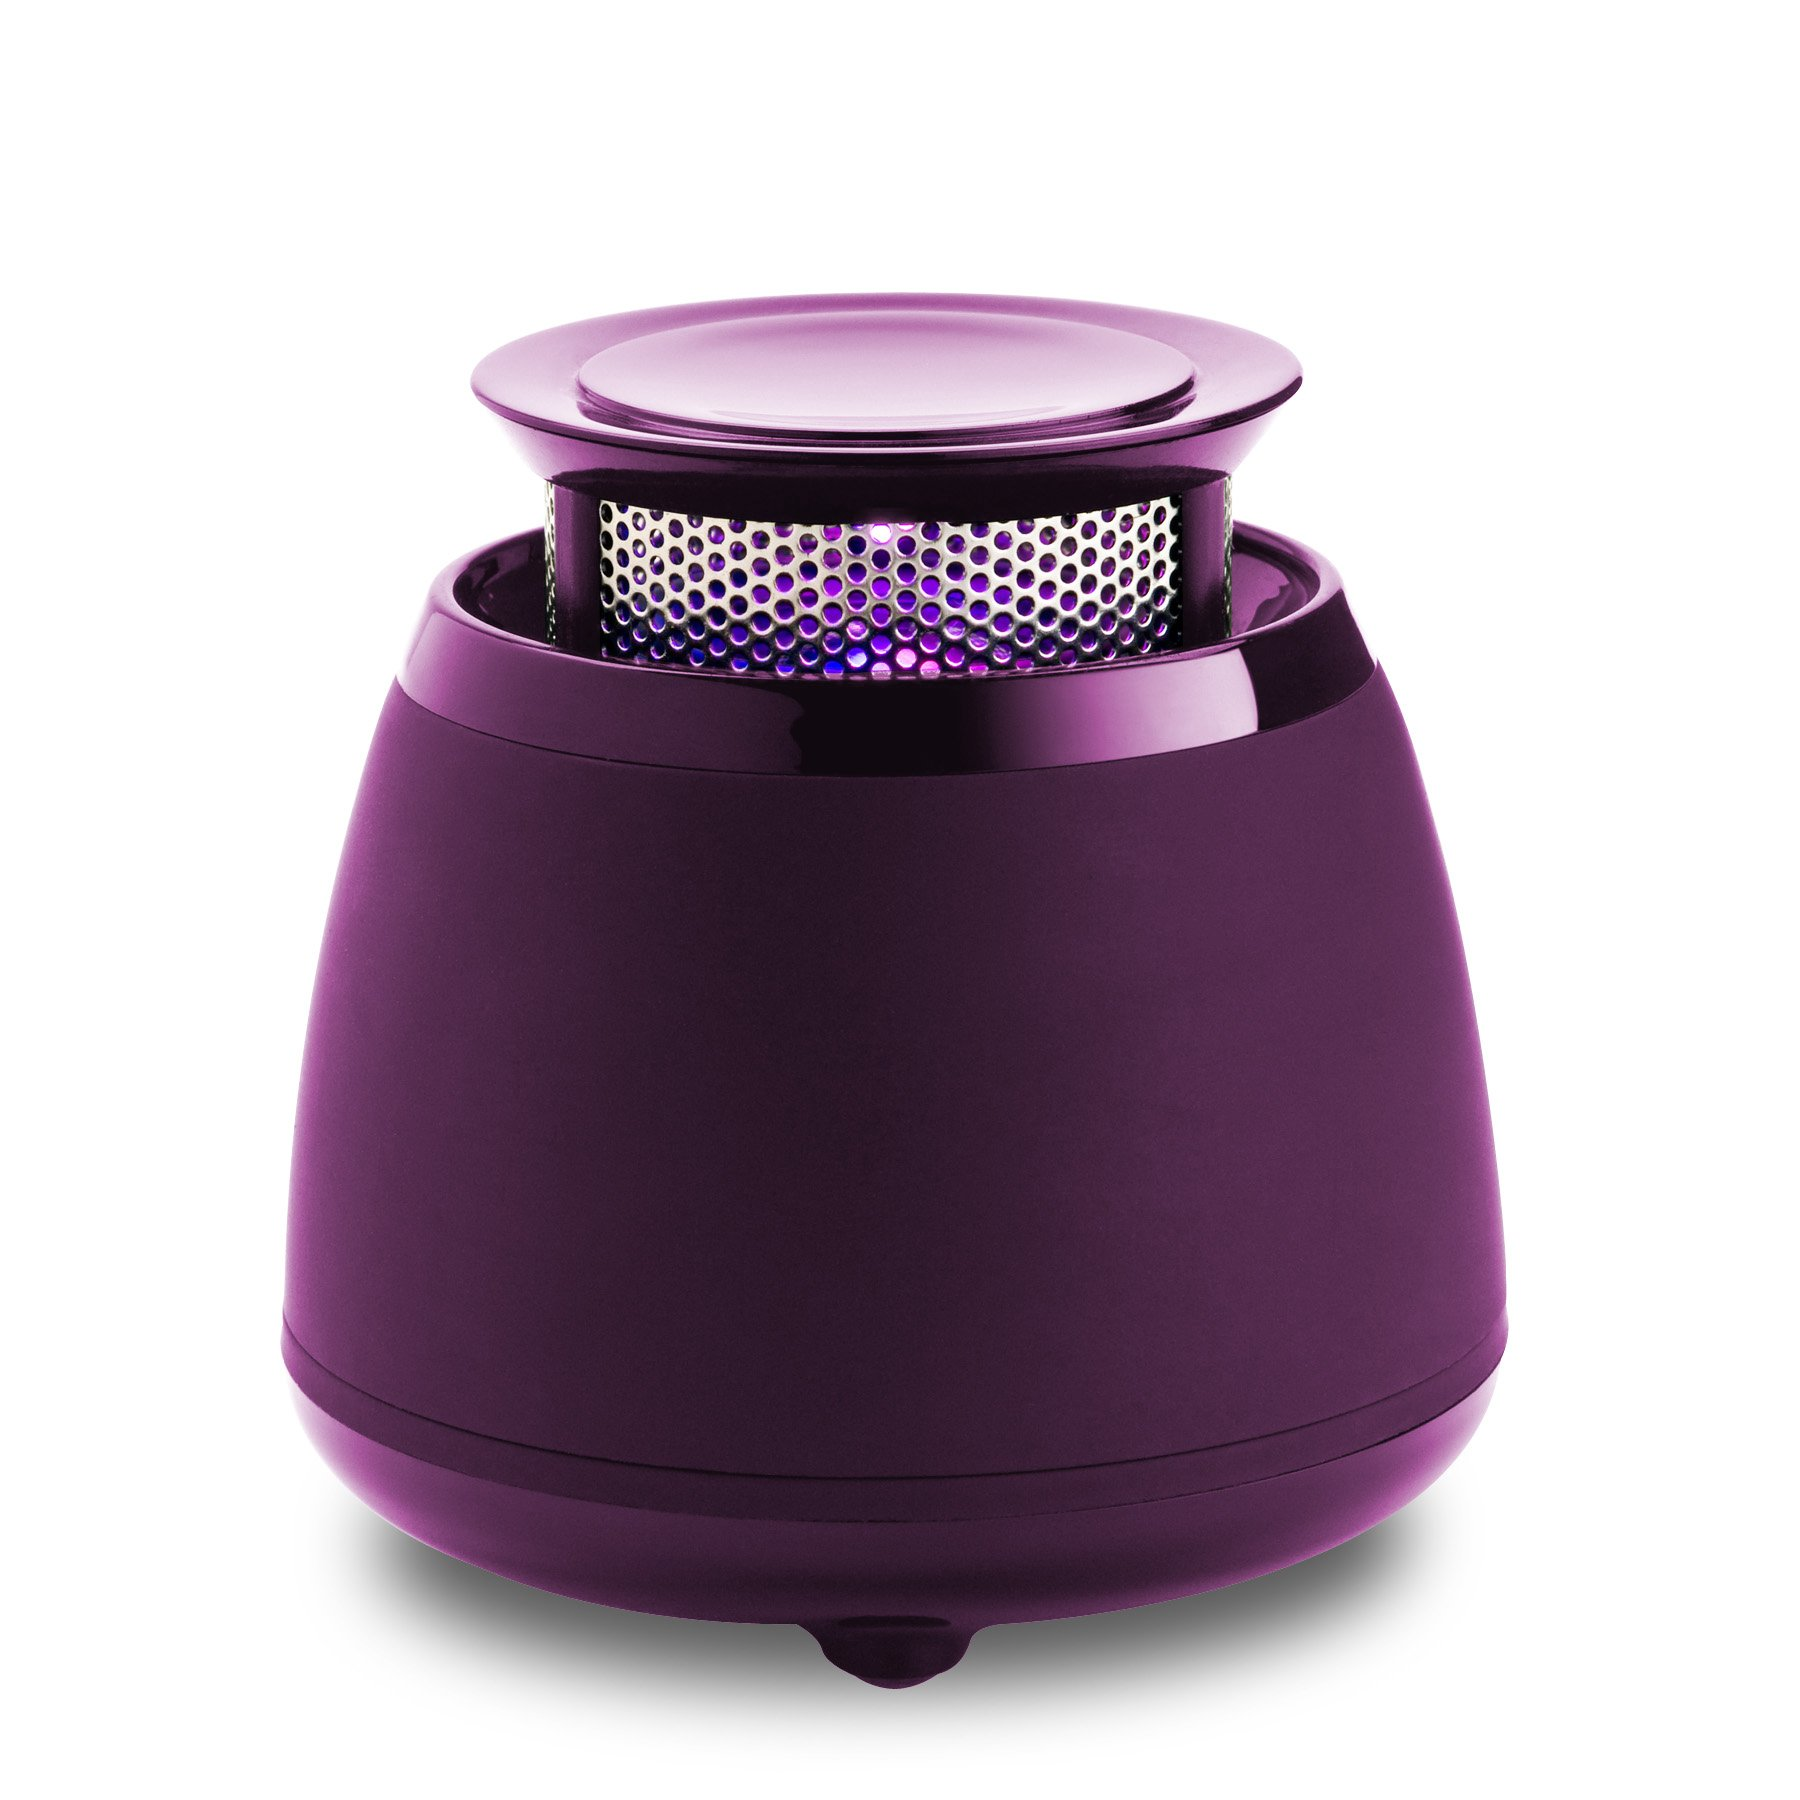 BLKBOX Wireless Bluetooth Speaker POP360 Hands Free Bluetooth Speaker - for iPhones, iPads, Androids, Samsung and all Phones, Tablets, Computers (Party Purple) by BLKBOX (Image #2)